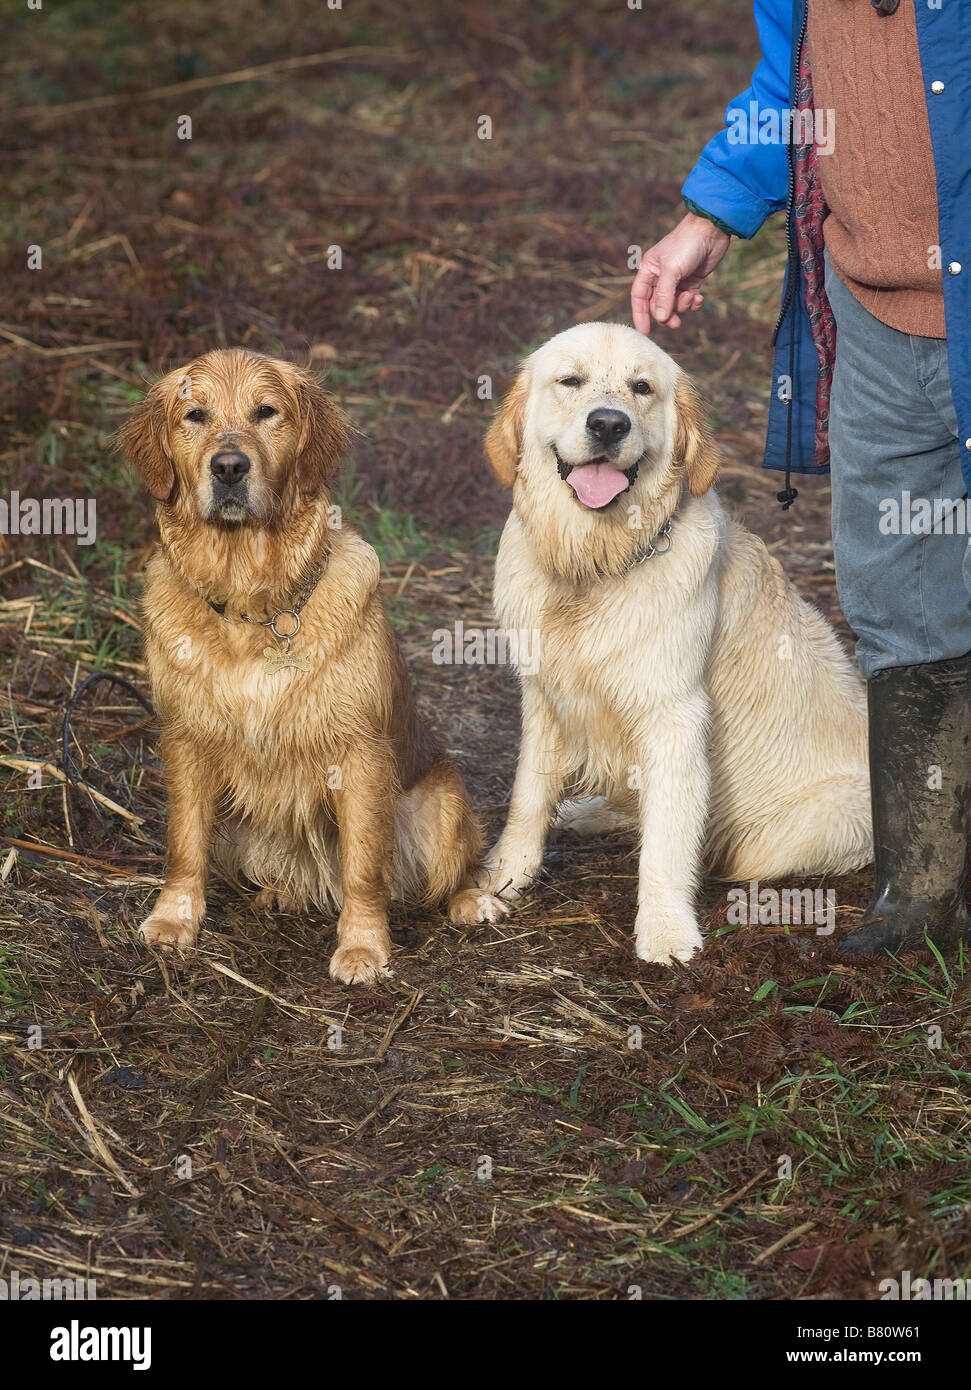 Golden retrievers, Elsa and Alfie, mother and son, aged 3 years and 9 months respectively - Stock Image